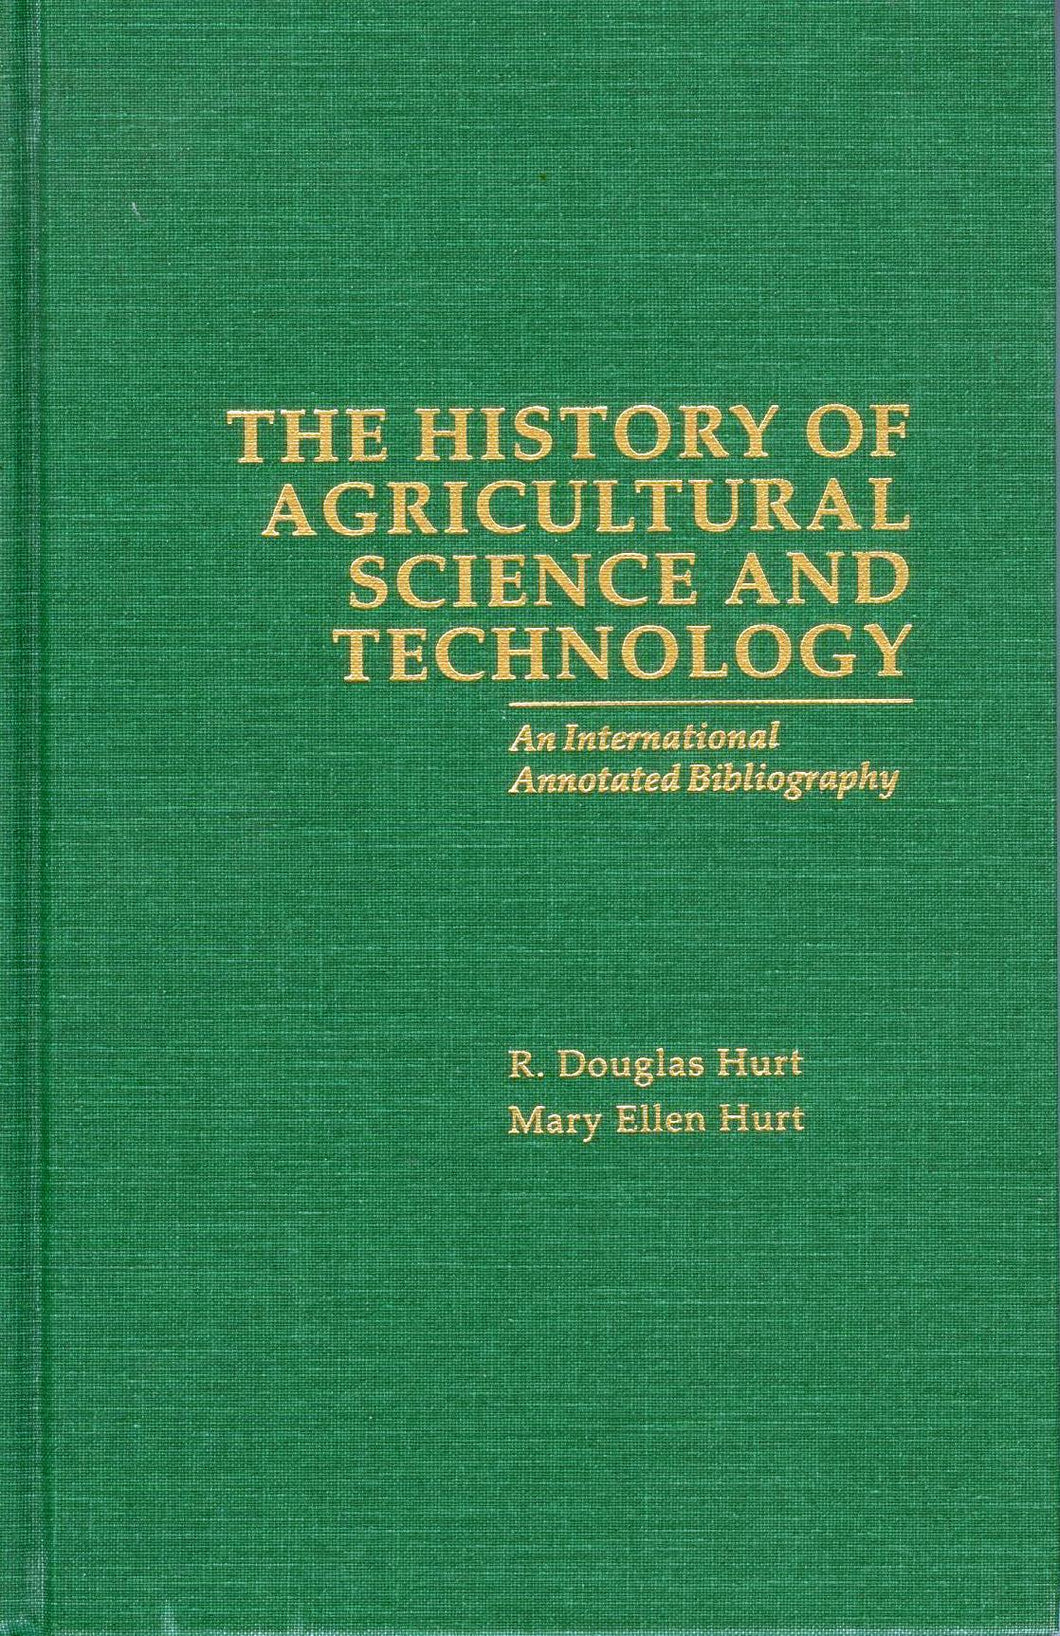 The History of Agricultural Science and Technology: An International Annotated Bibliography